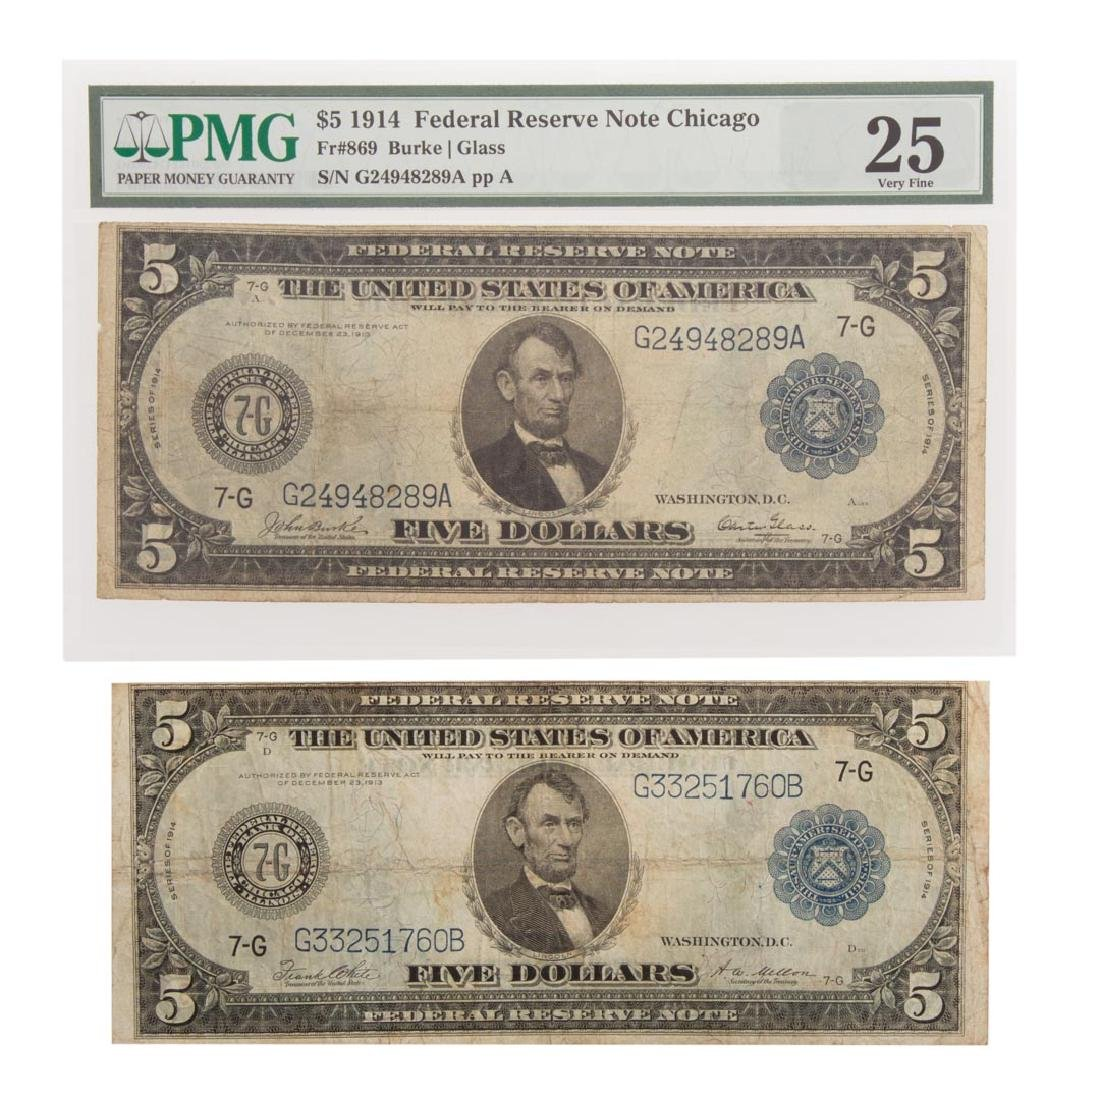 [US] Pair of $5 1914 Federal Reserve Notes